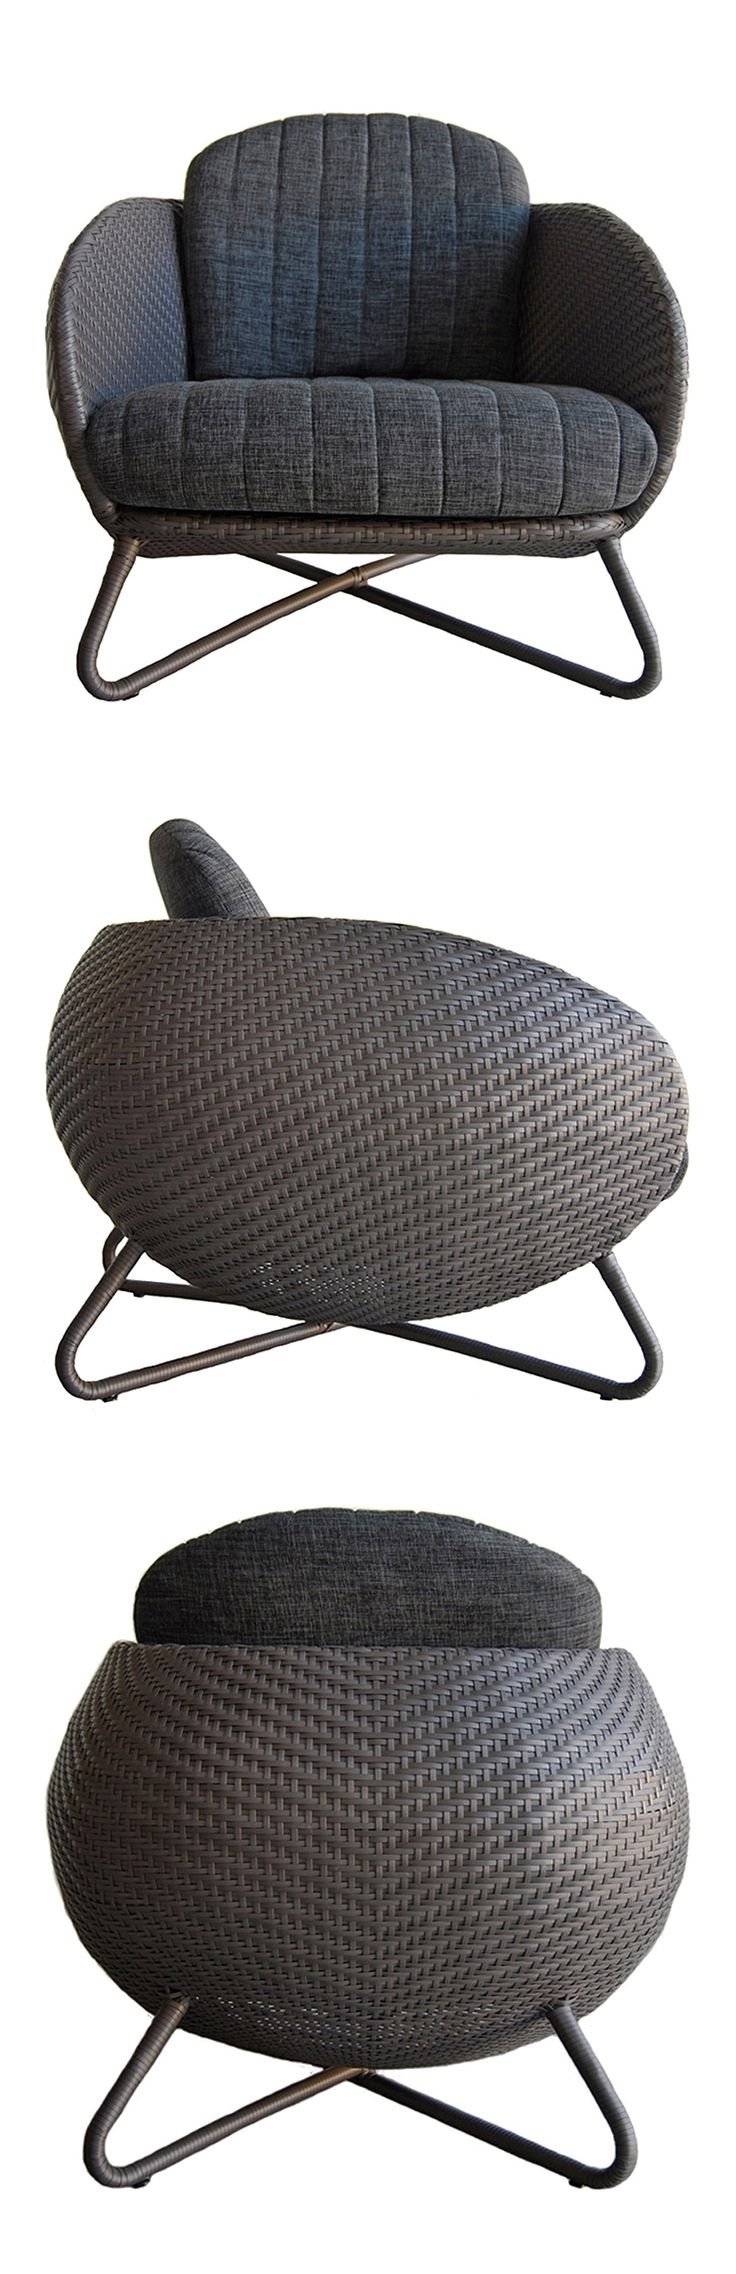 Circle outdoor chair | furniture design